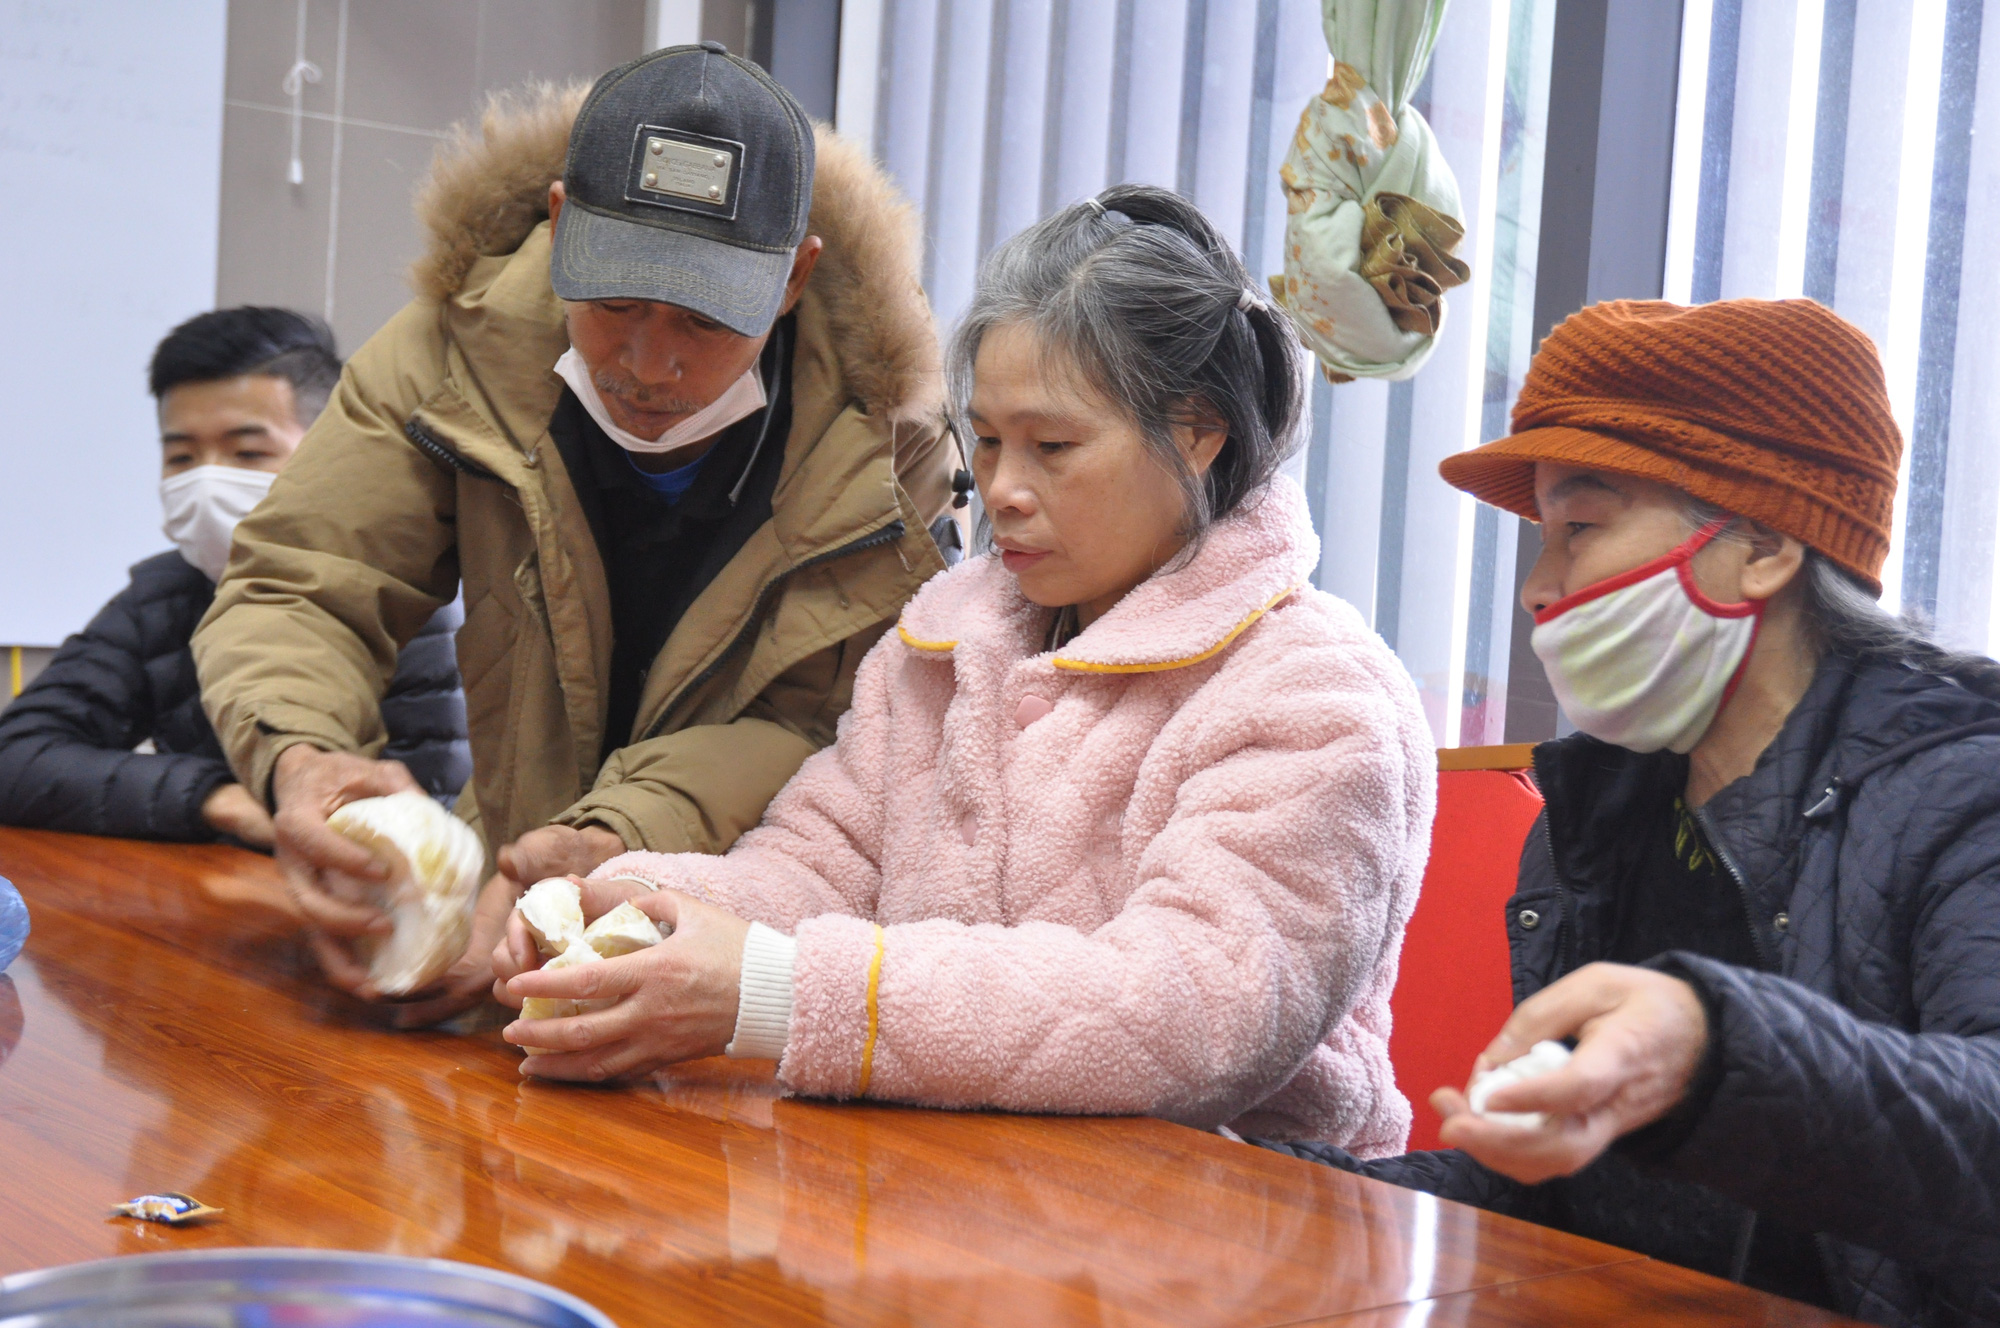 Vietnamese woman reunited with family after 24 years straying in China